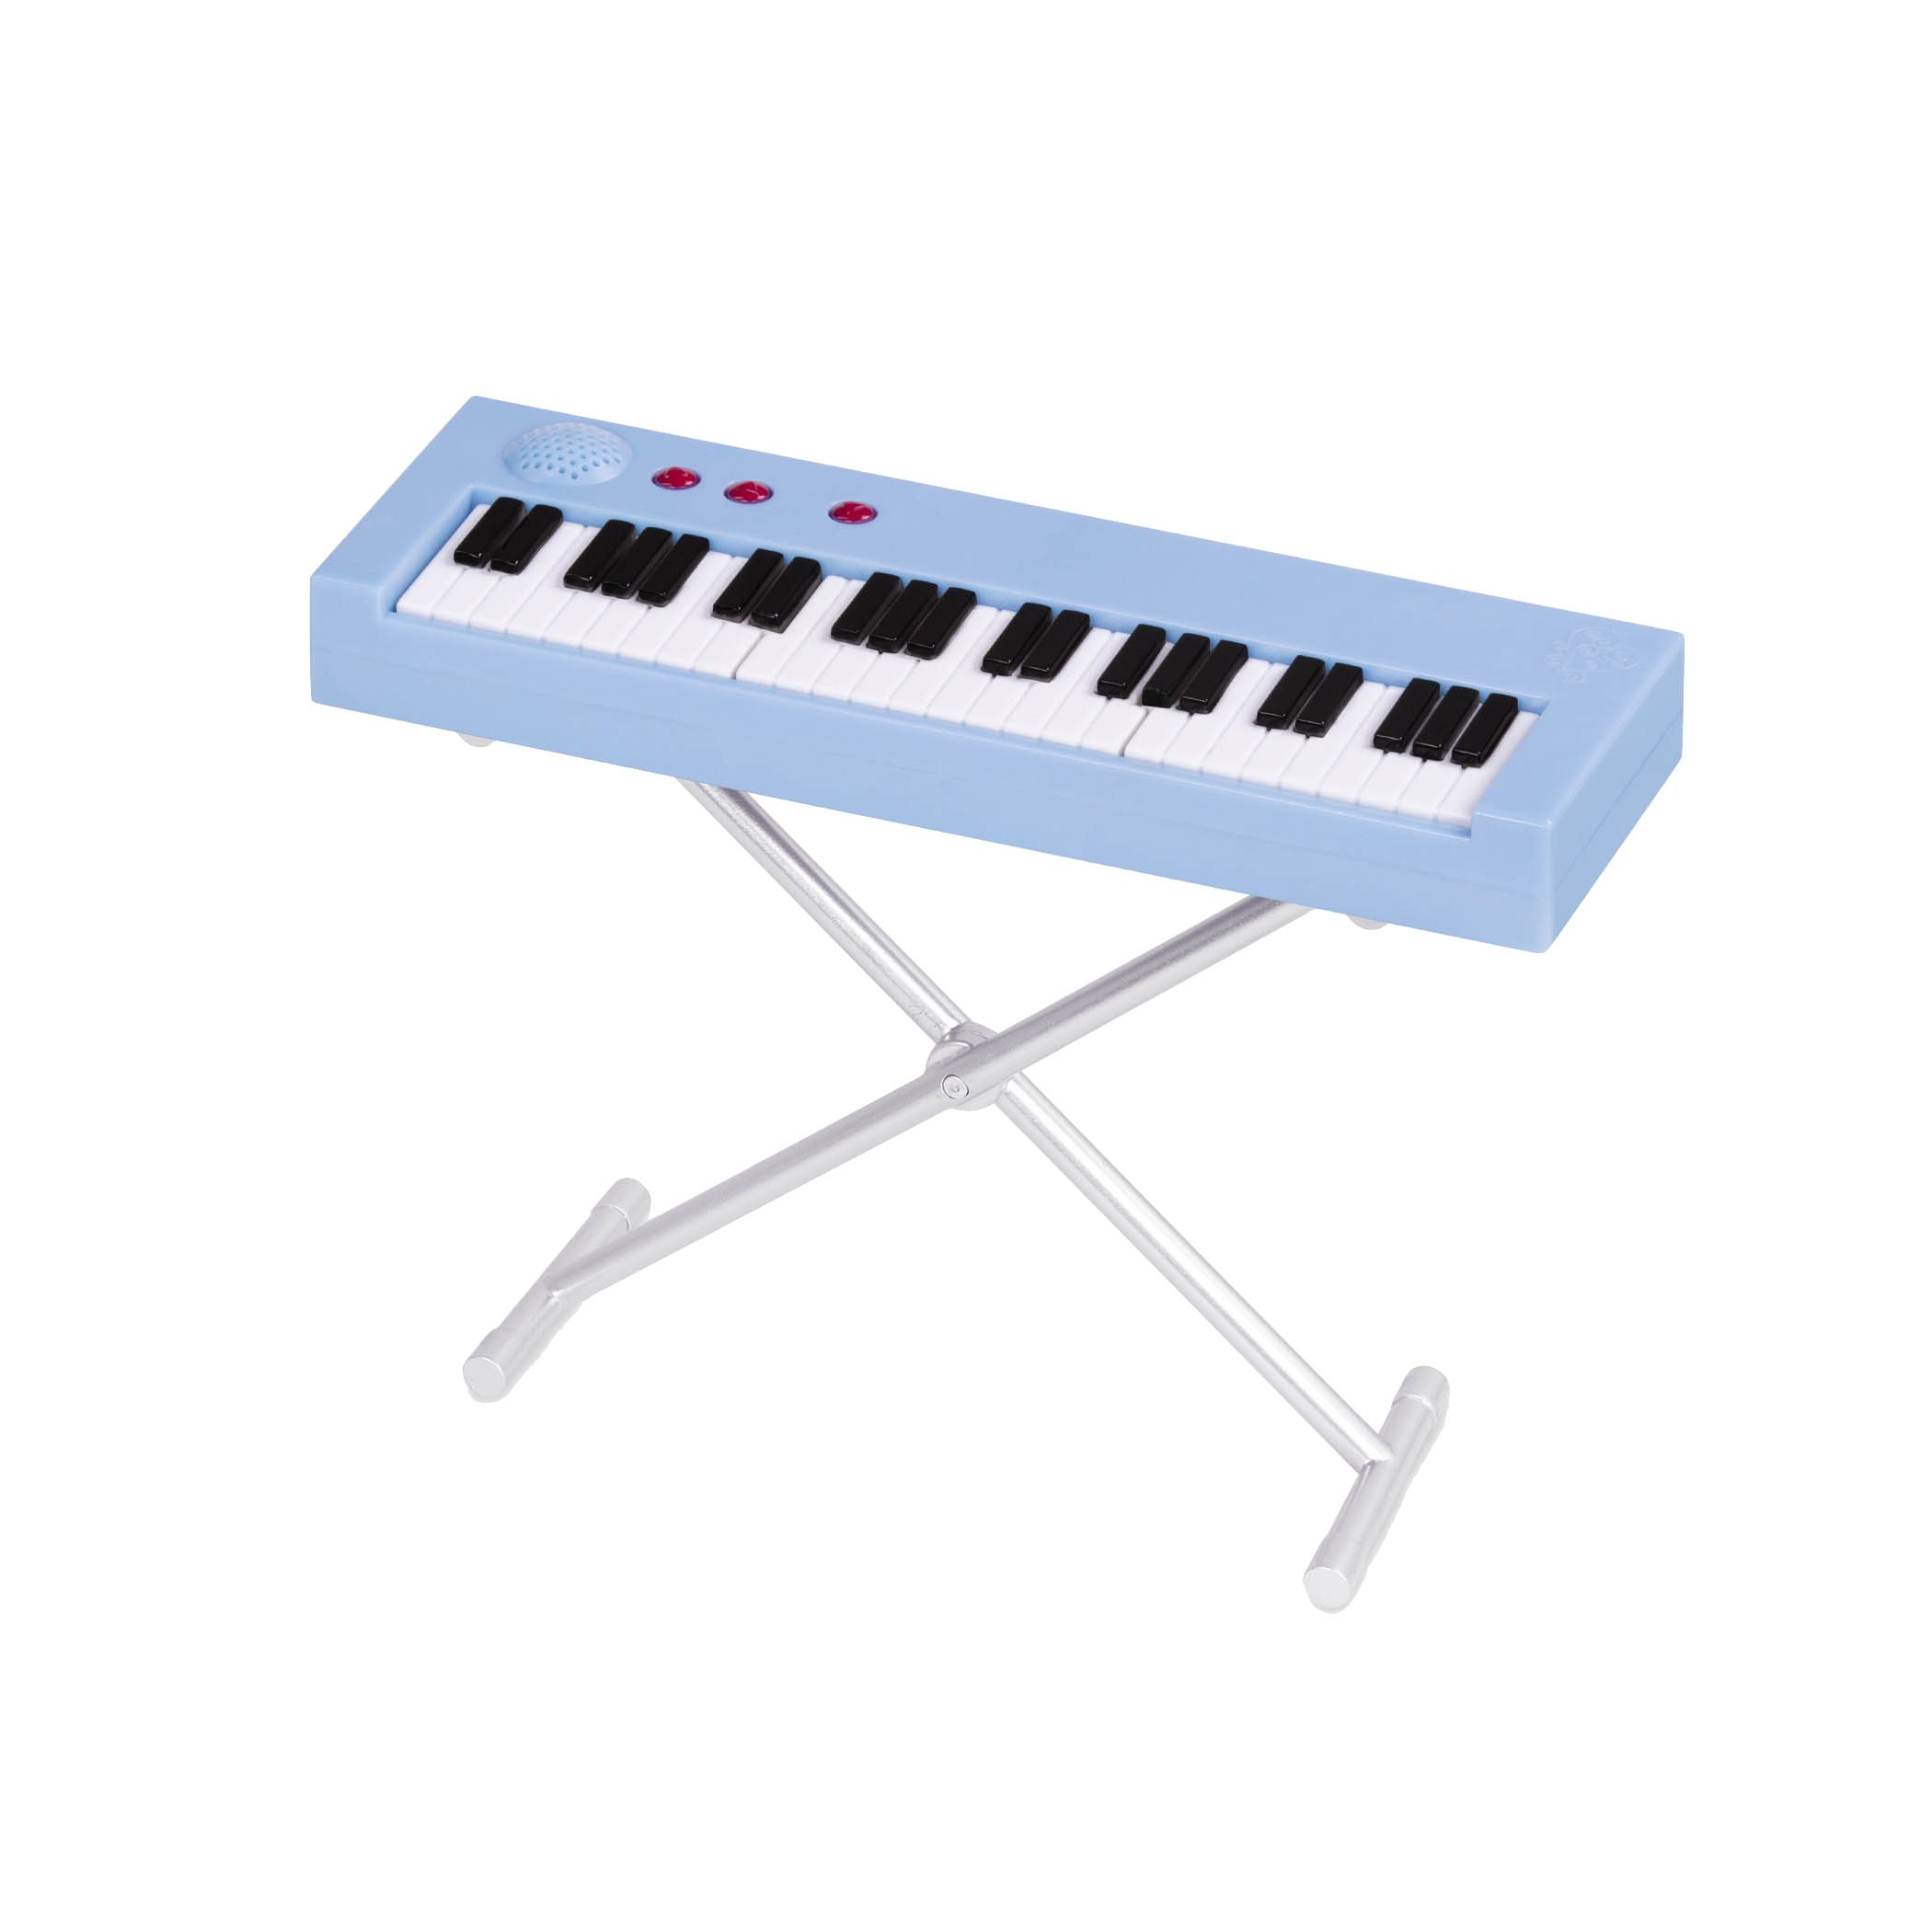 School Band Playset keyboard detail